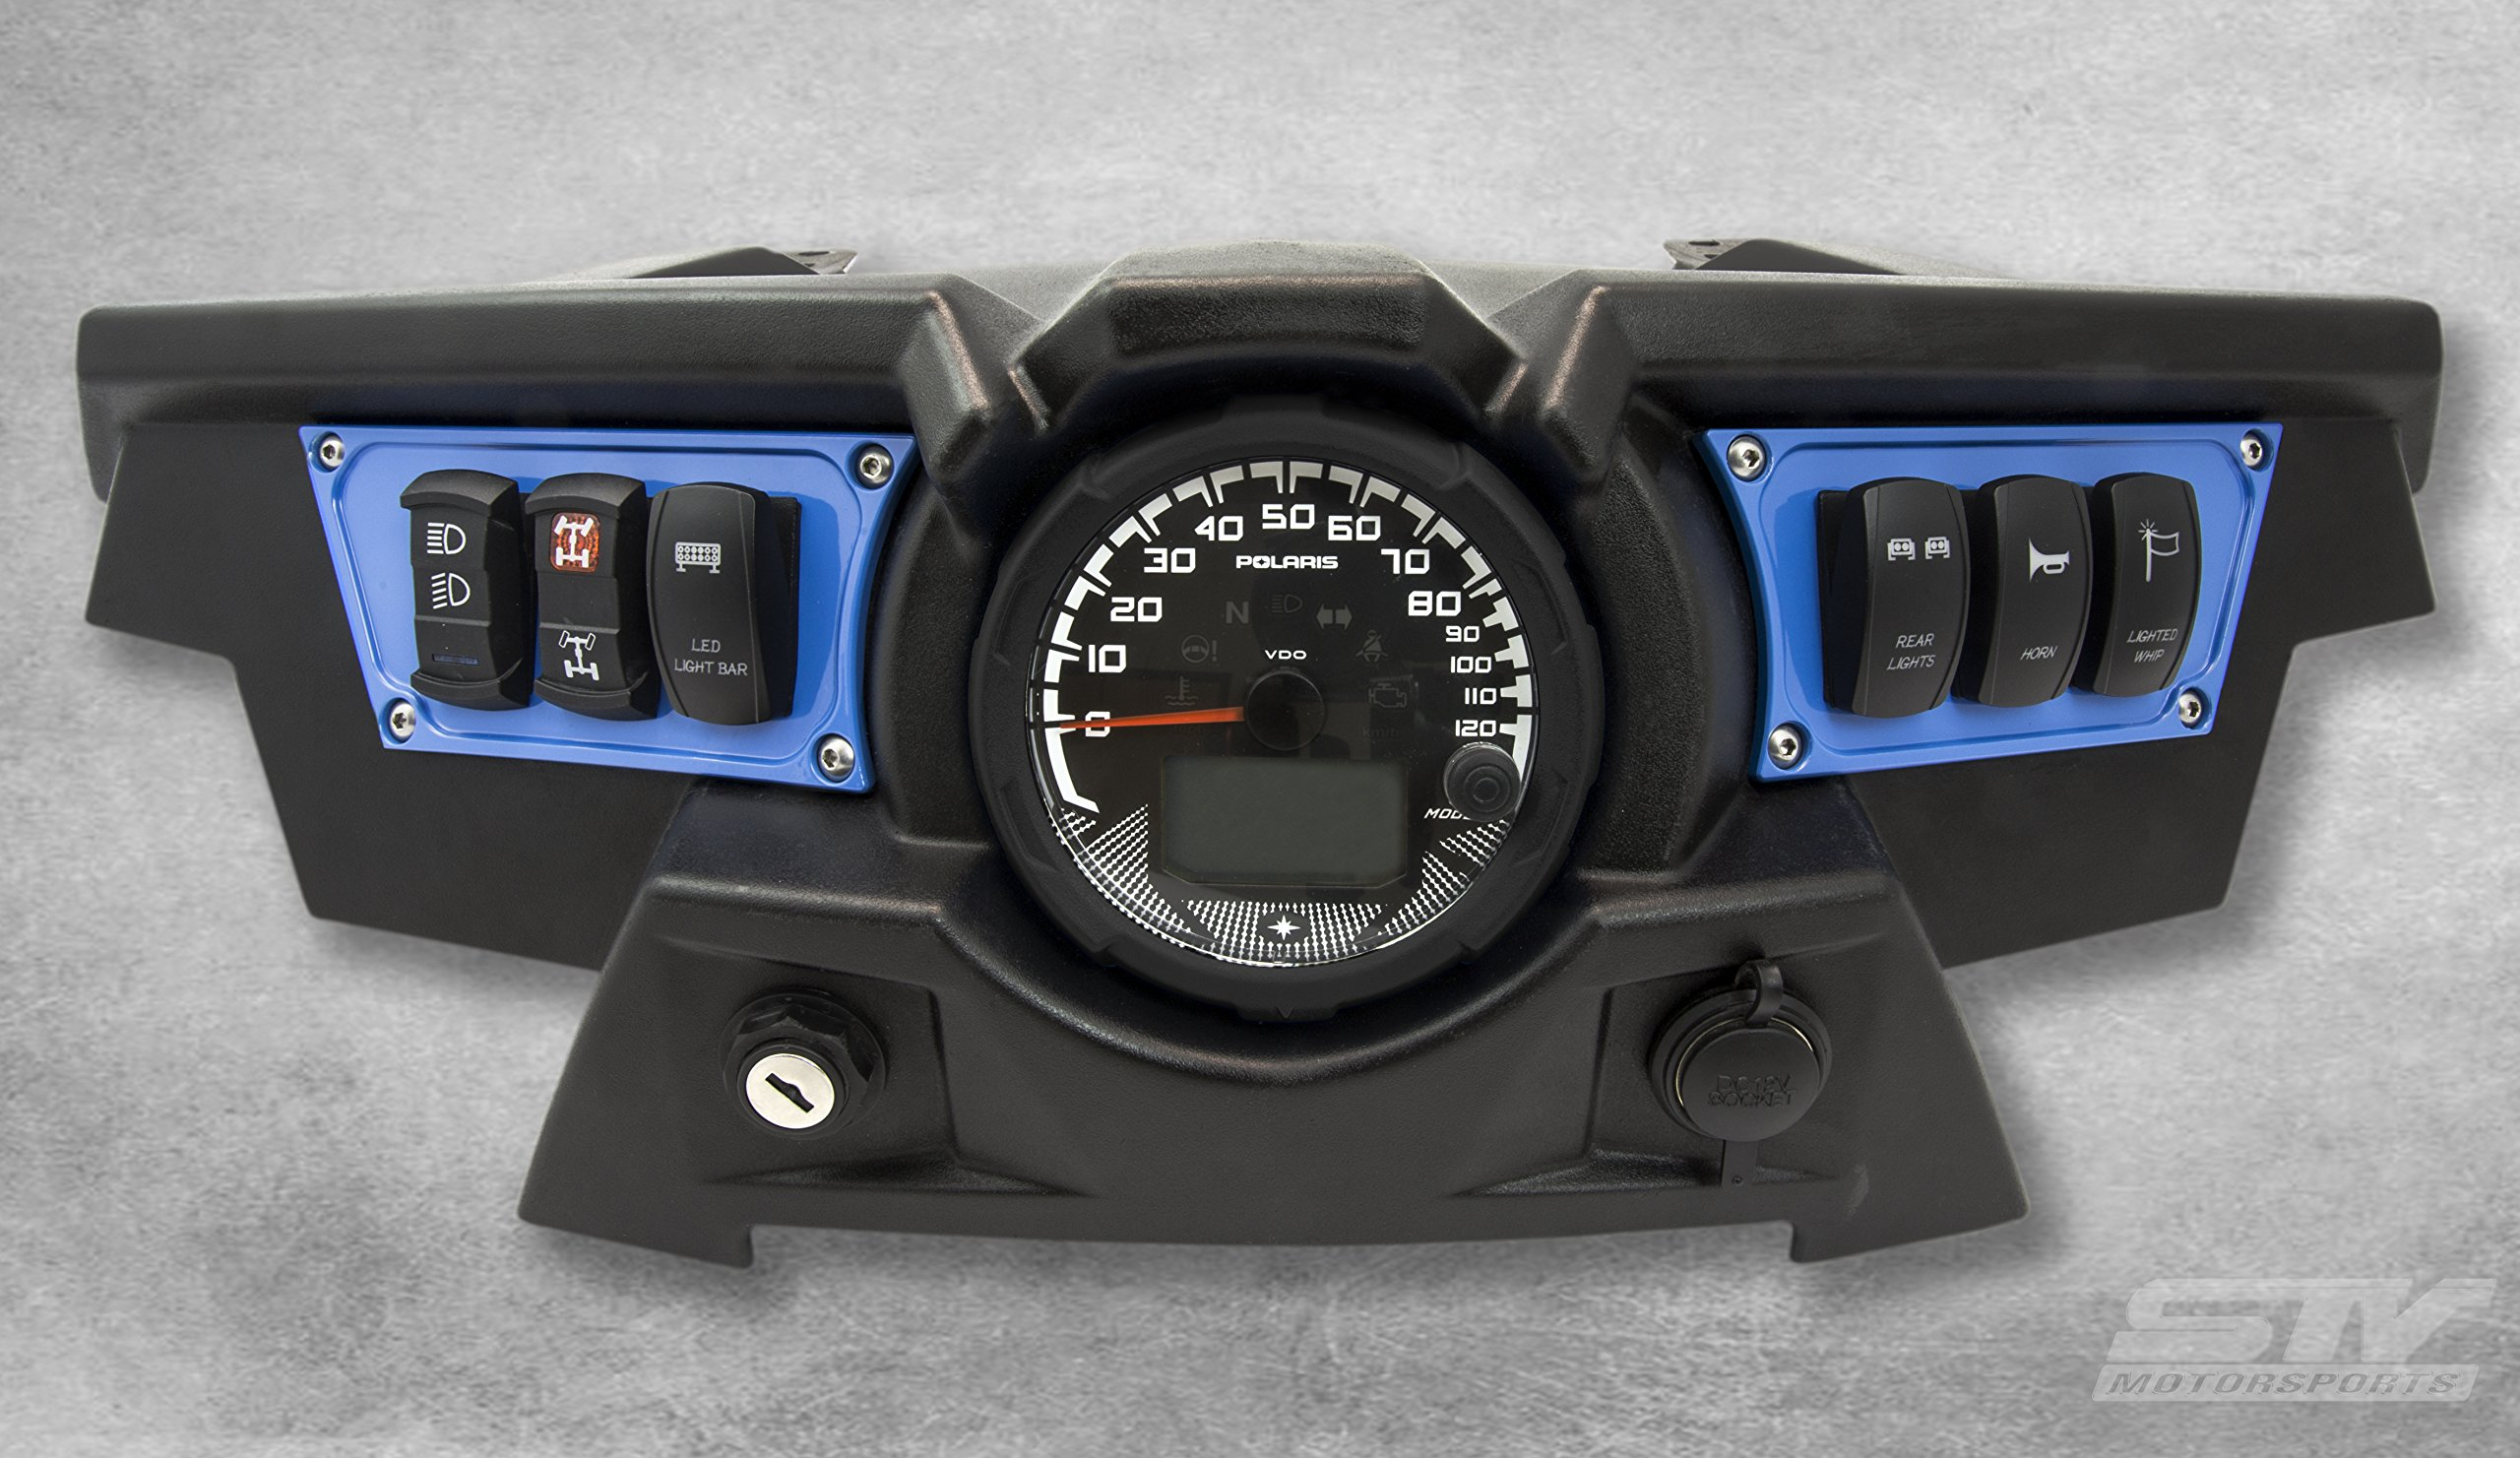 STV Motorsports Custom Aluminum Blue Dash Panel for 2015-2018 Polaris RZR XP 900 with 4 Laser Rocker Switches Included